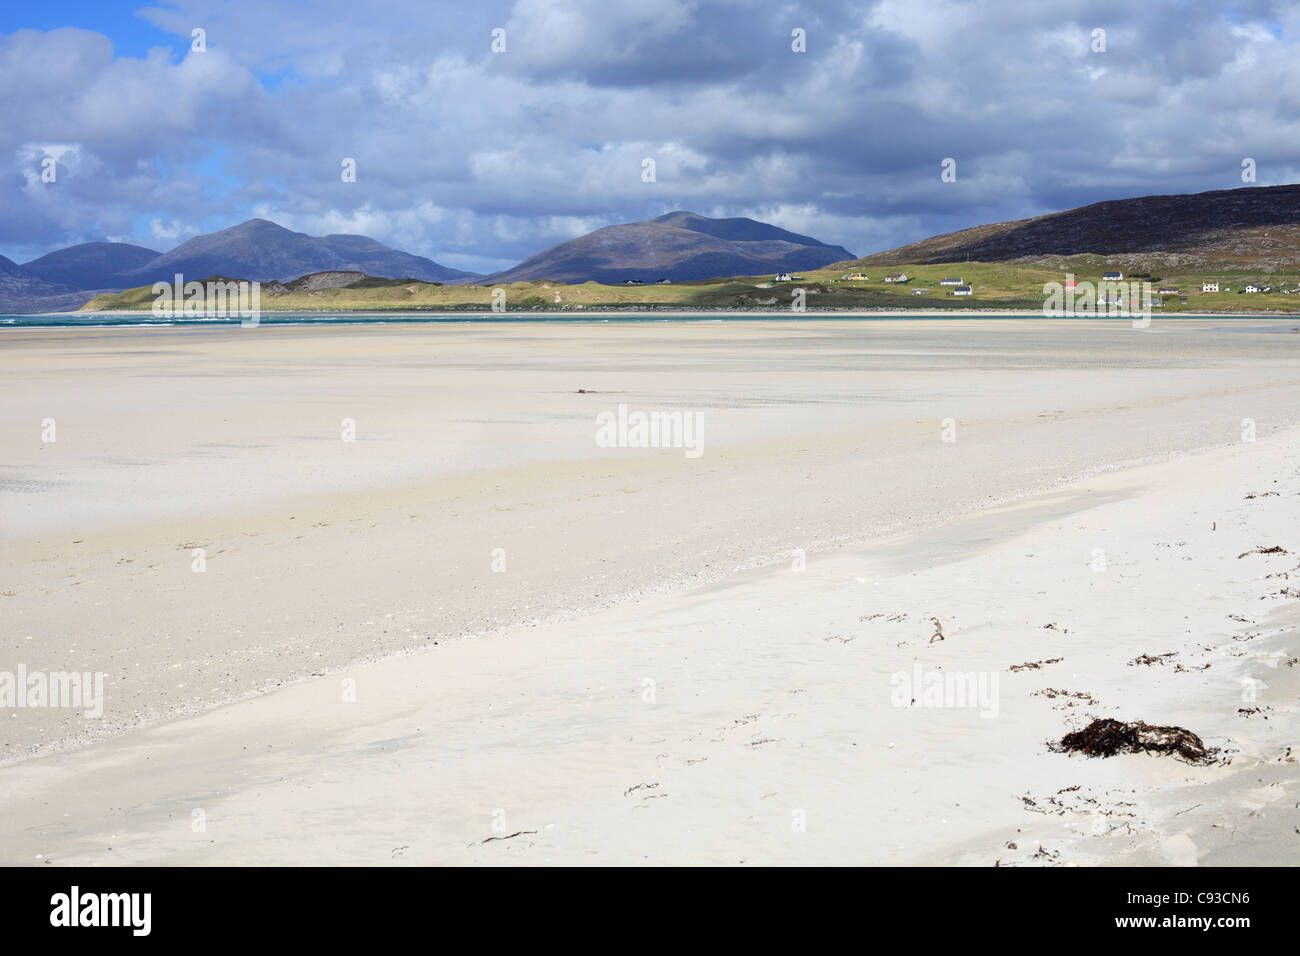 Beach at Seilebost Isle of Harris, Outer Hebrides, Scotland with view to Isle Taransay in the distance - Stock Image